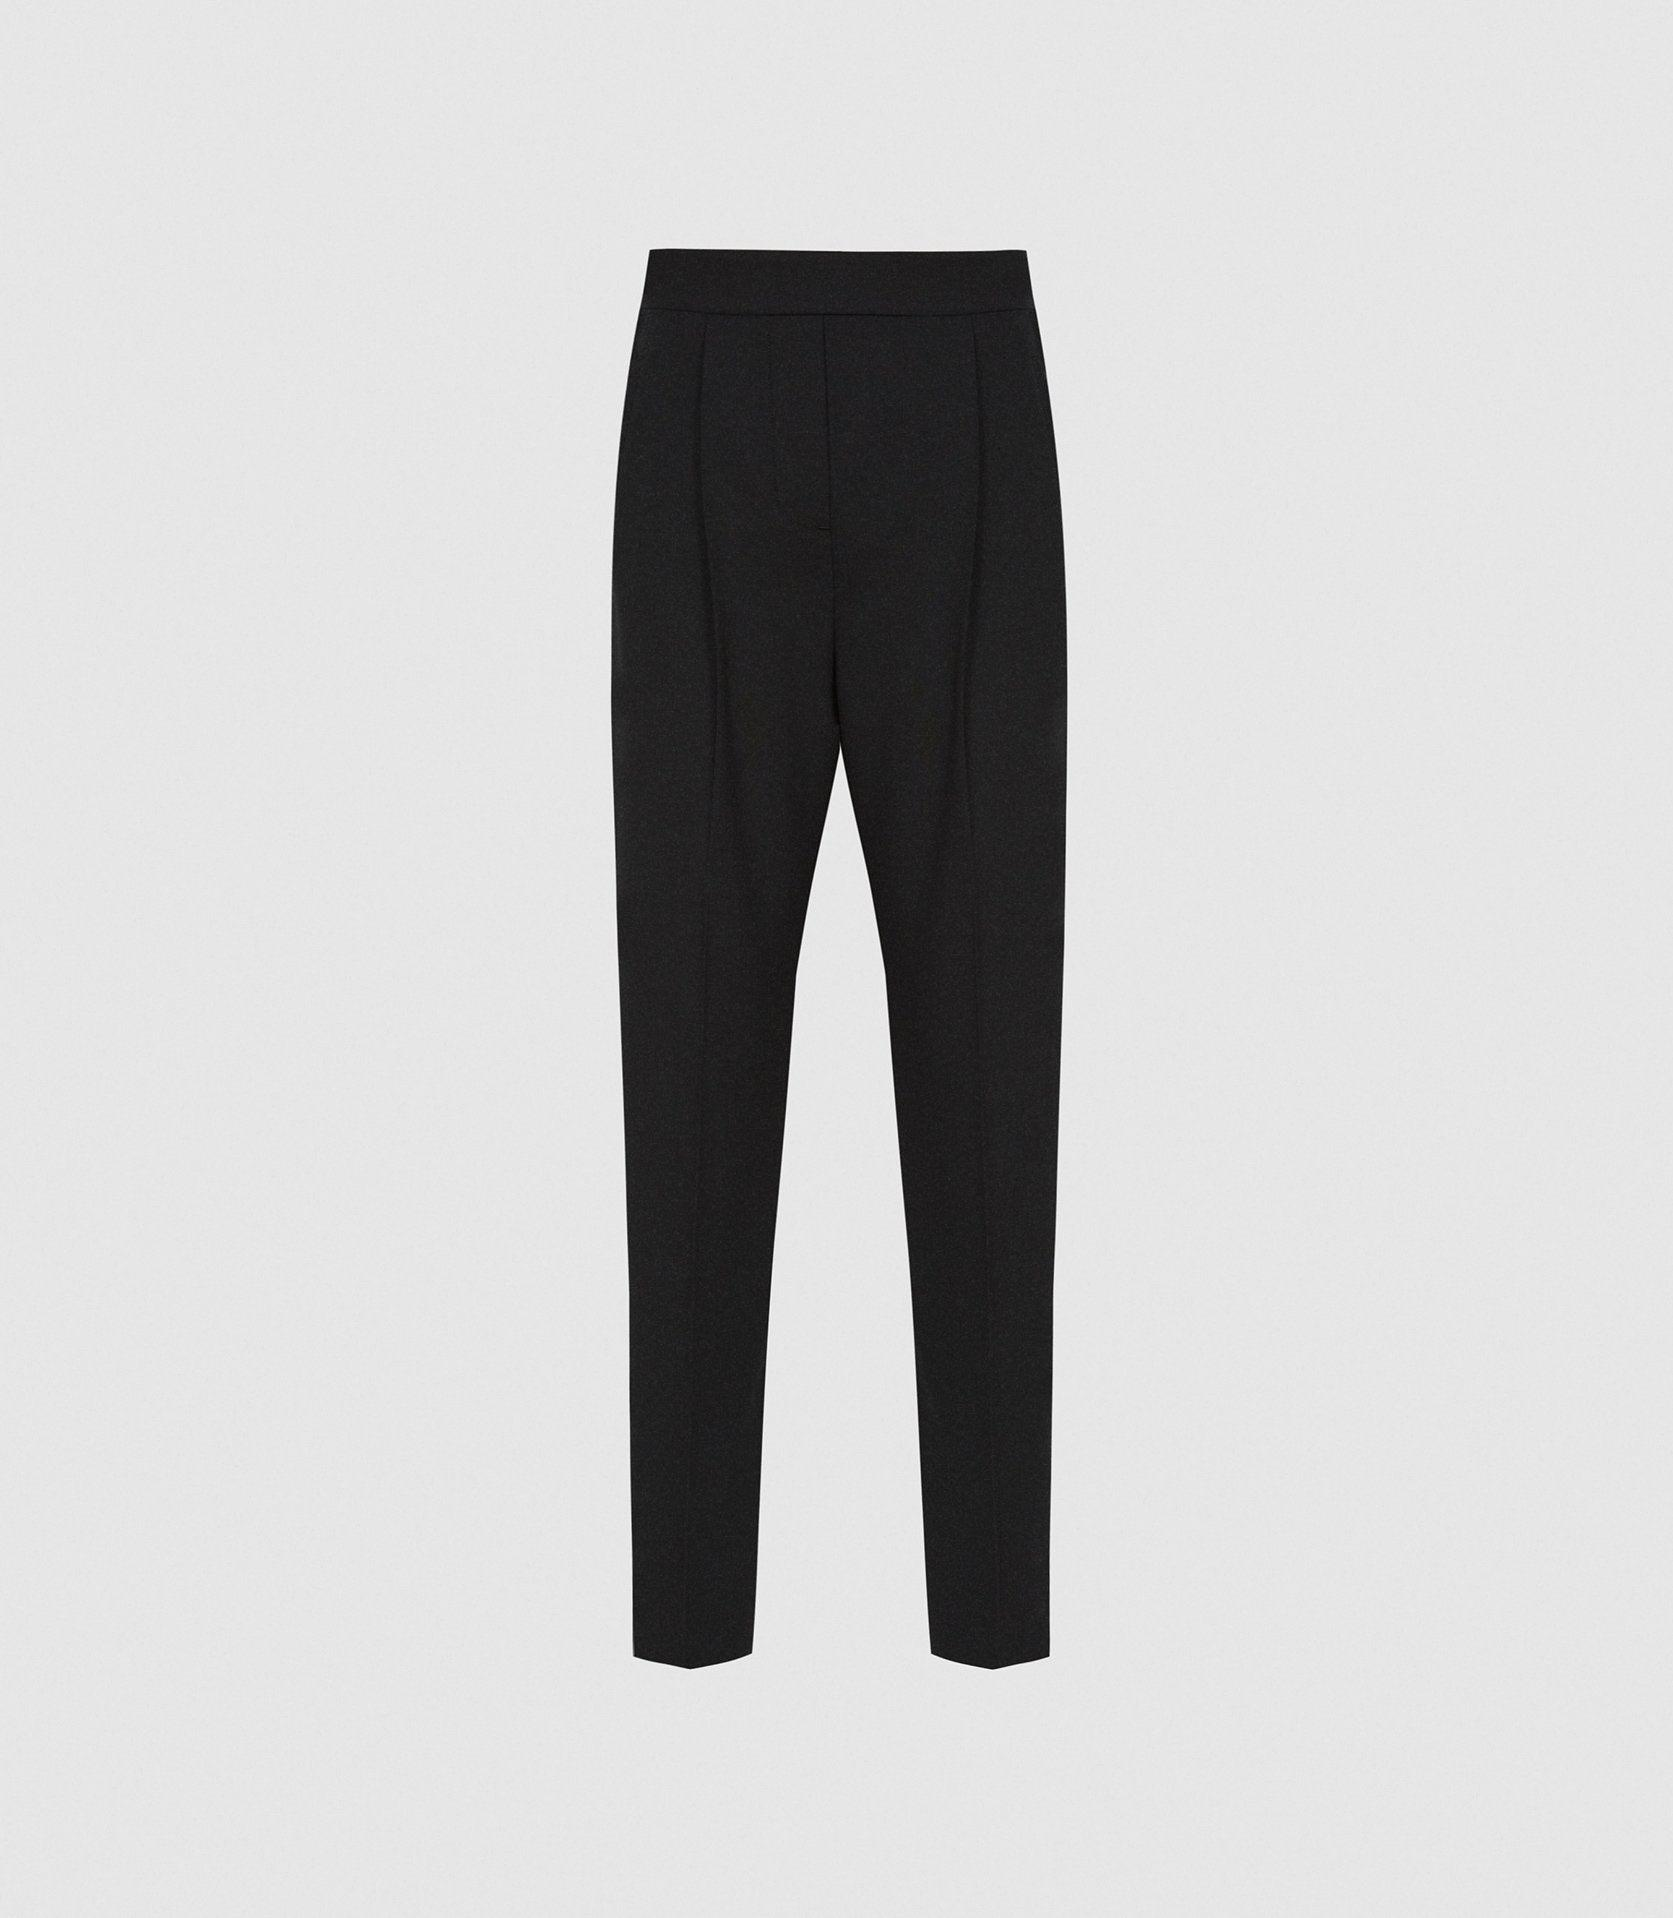 JAY - PLEAT FRONT TAILORED TROUSERS 4